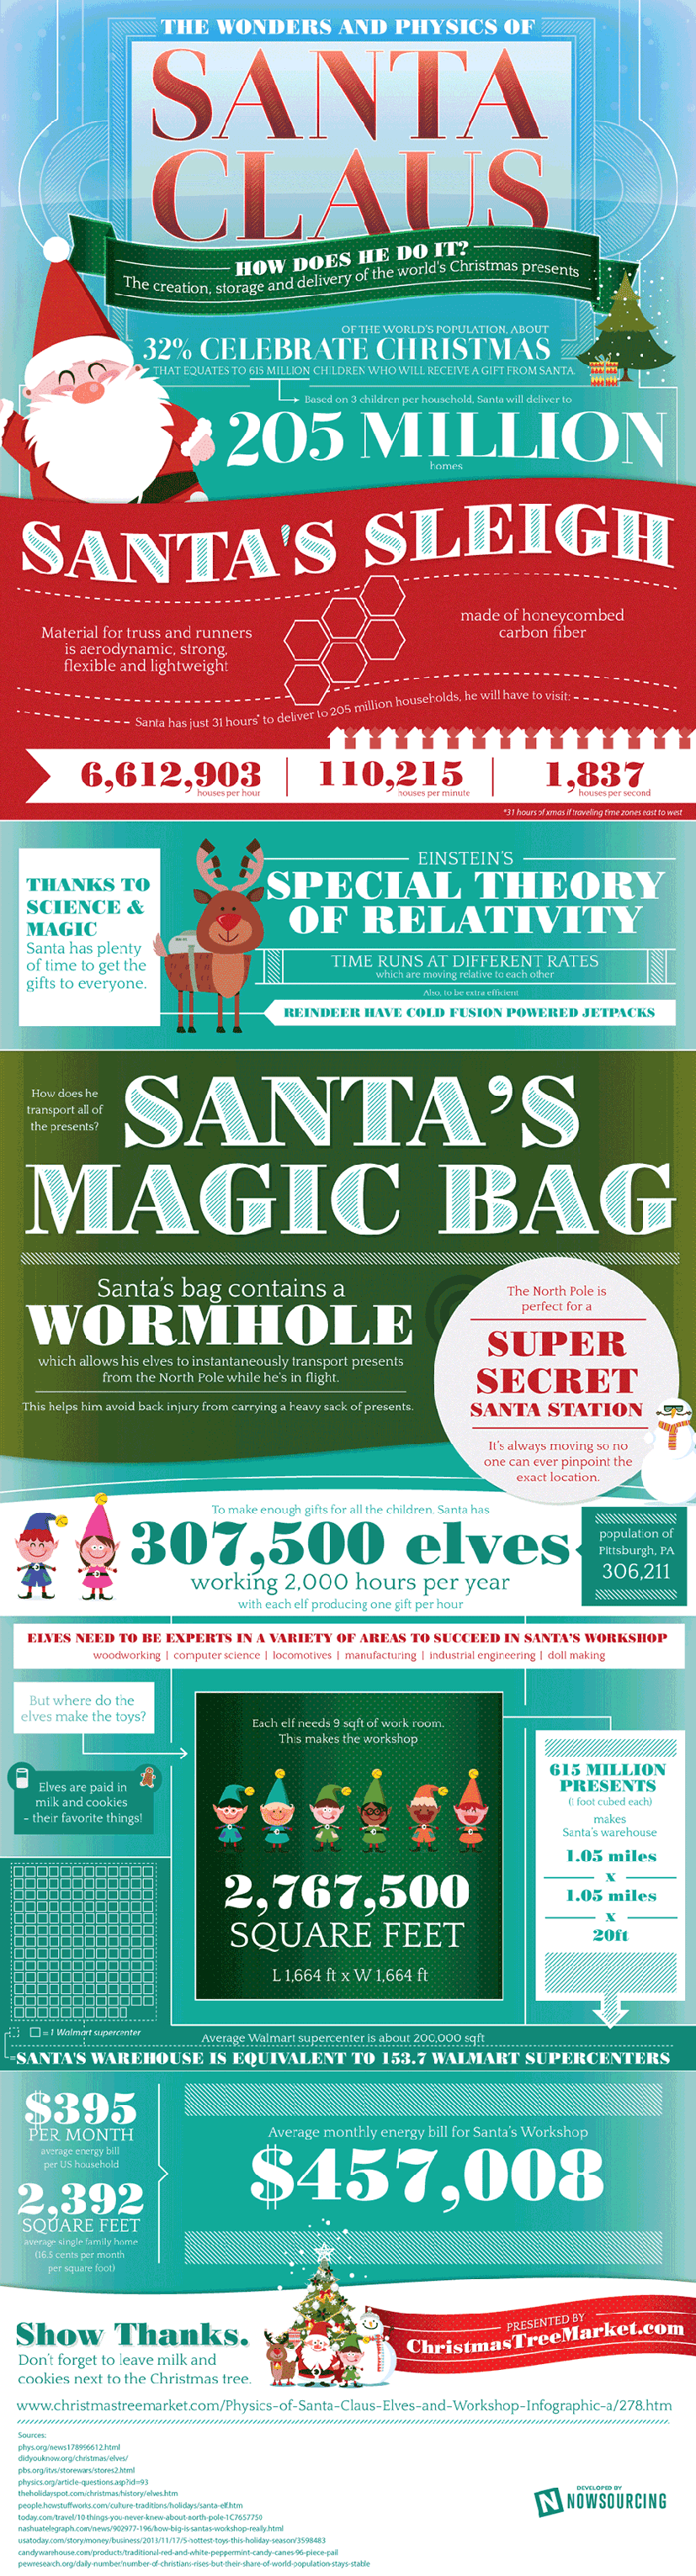 Wonders and Physics of Santa Claus